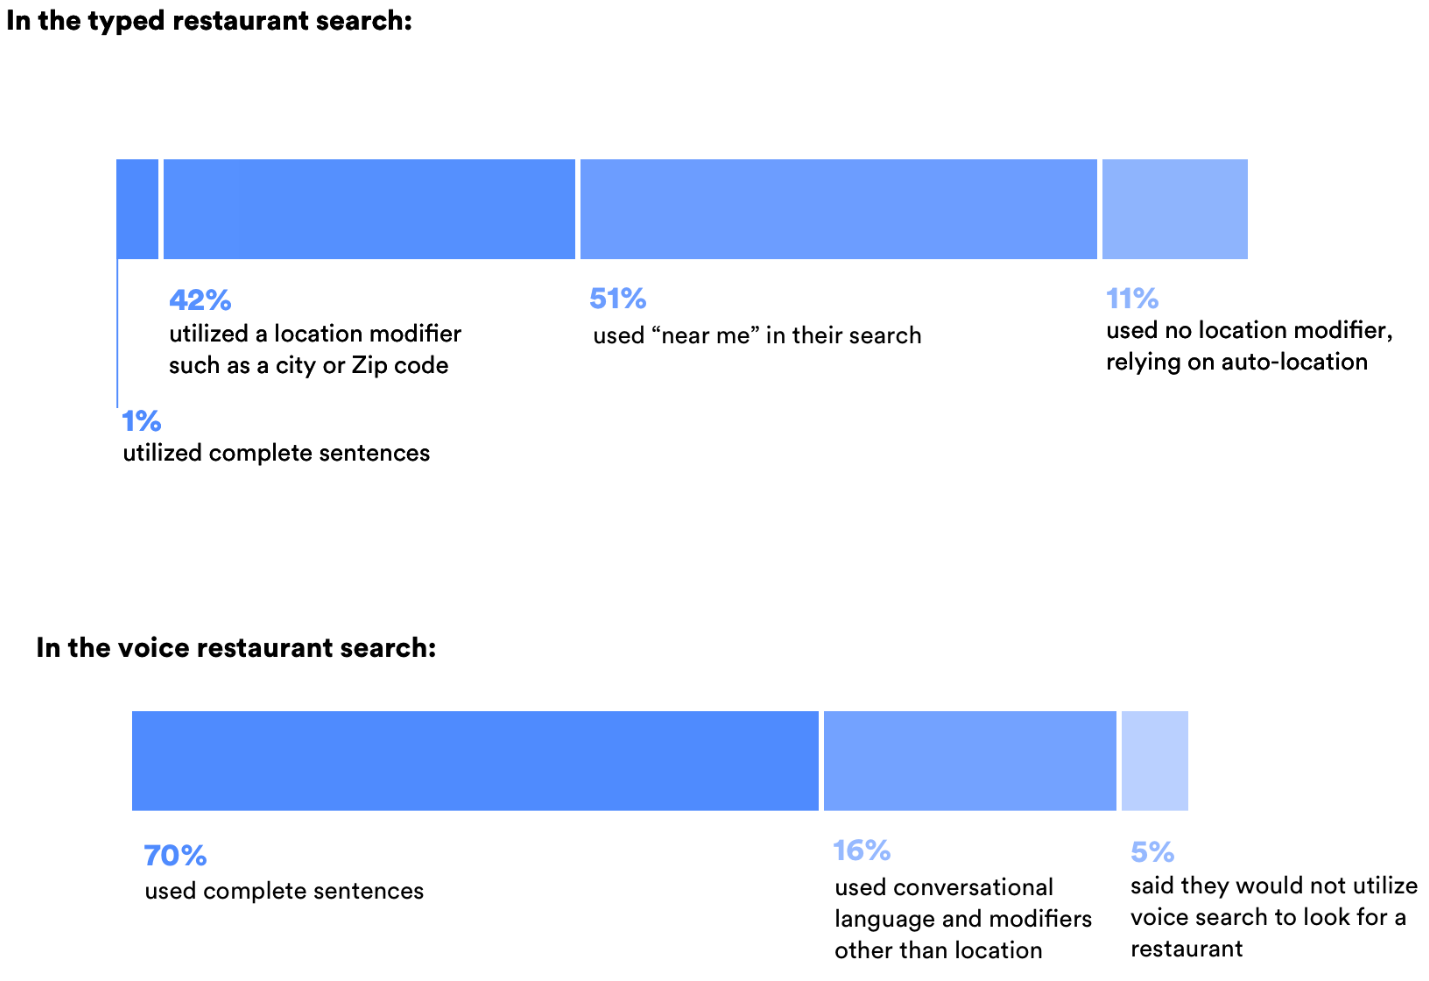 "In the typed restaurant search, 1% used completed sentences, 42% used a location modifier, 51% used ""near me"", and 11% relied on auto-location while in the voice restaurant search, 70% used complete sentences, 16% used conversational language, and 5% said they wouldn't use voice to search for a restaurant."